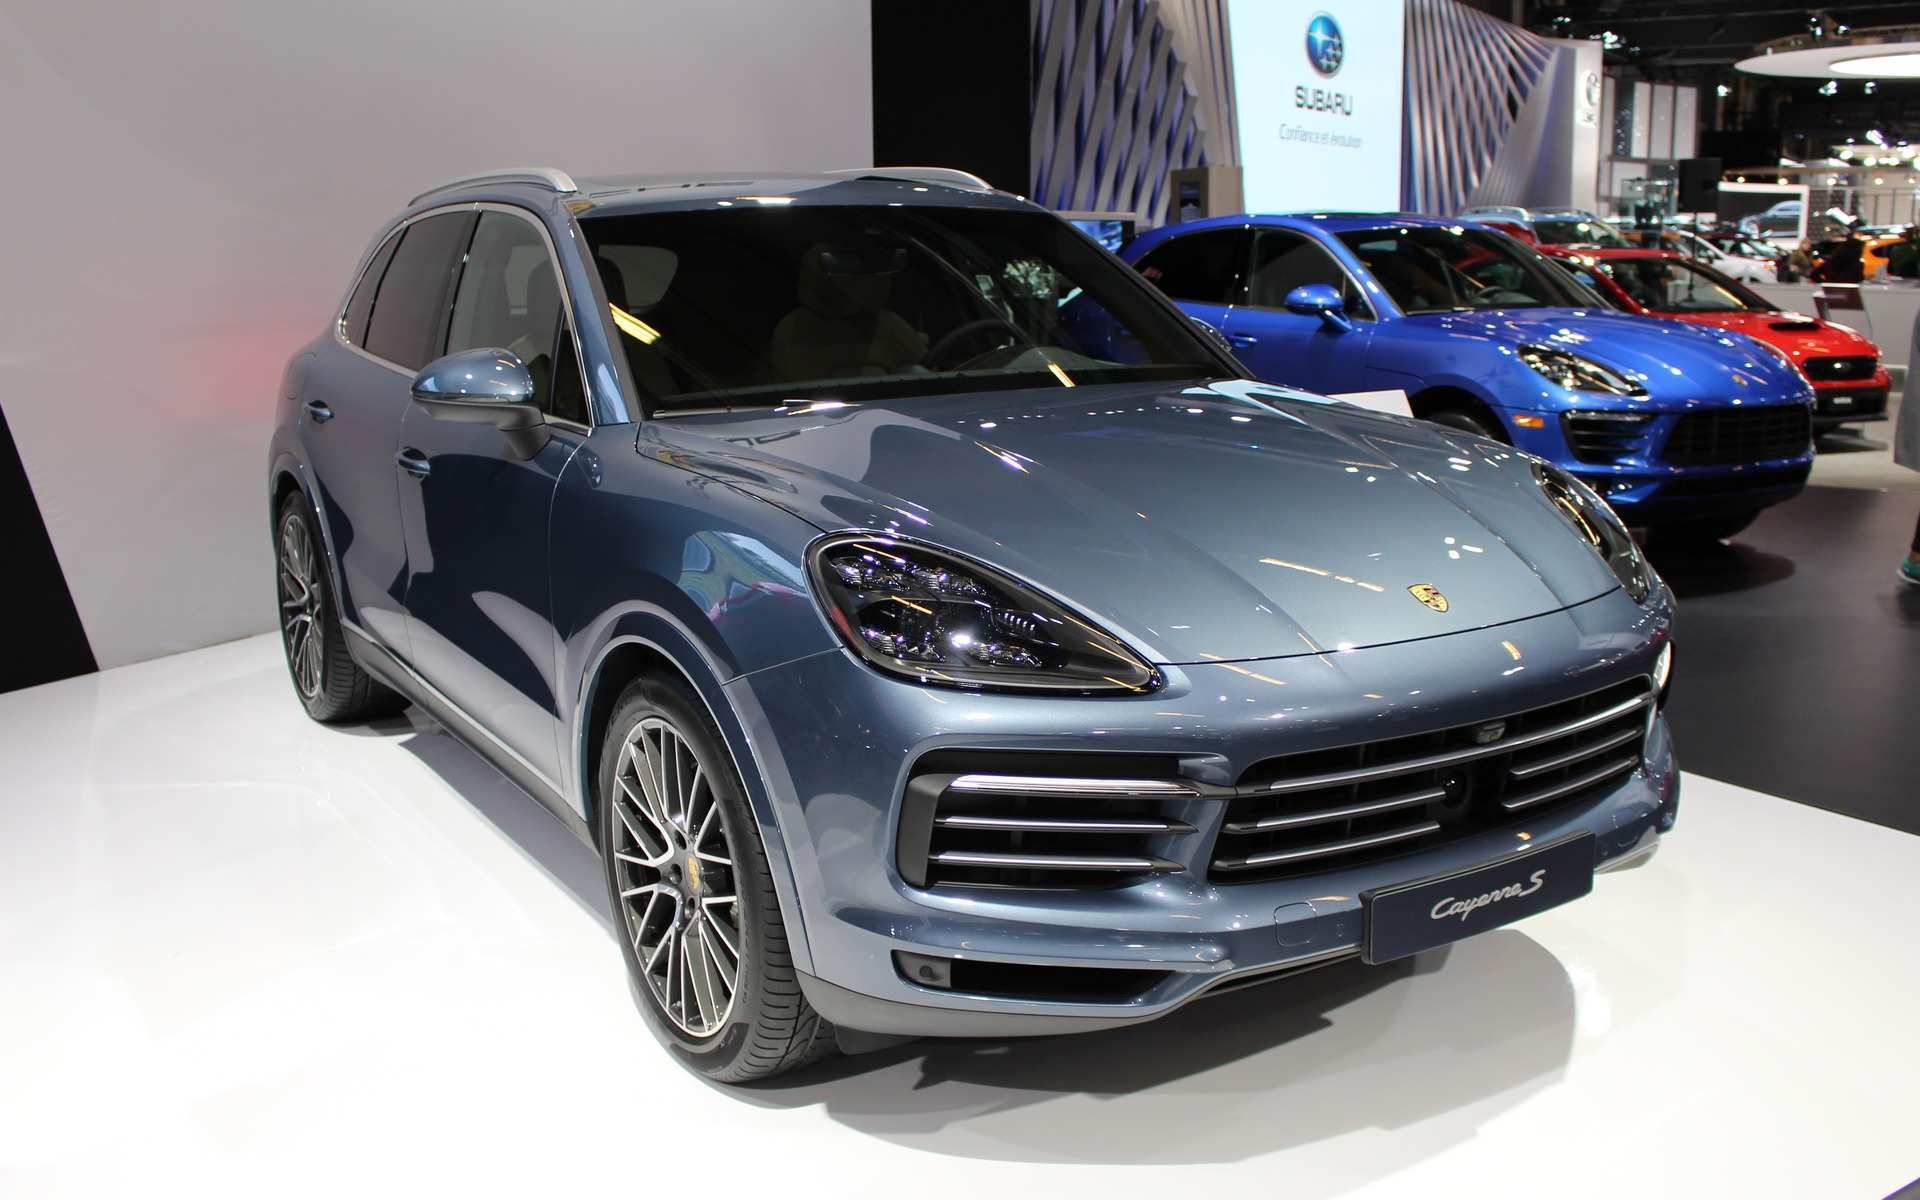 89 A 2019 Porsche Cayenne Exterior And Interior